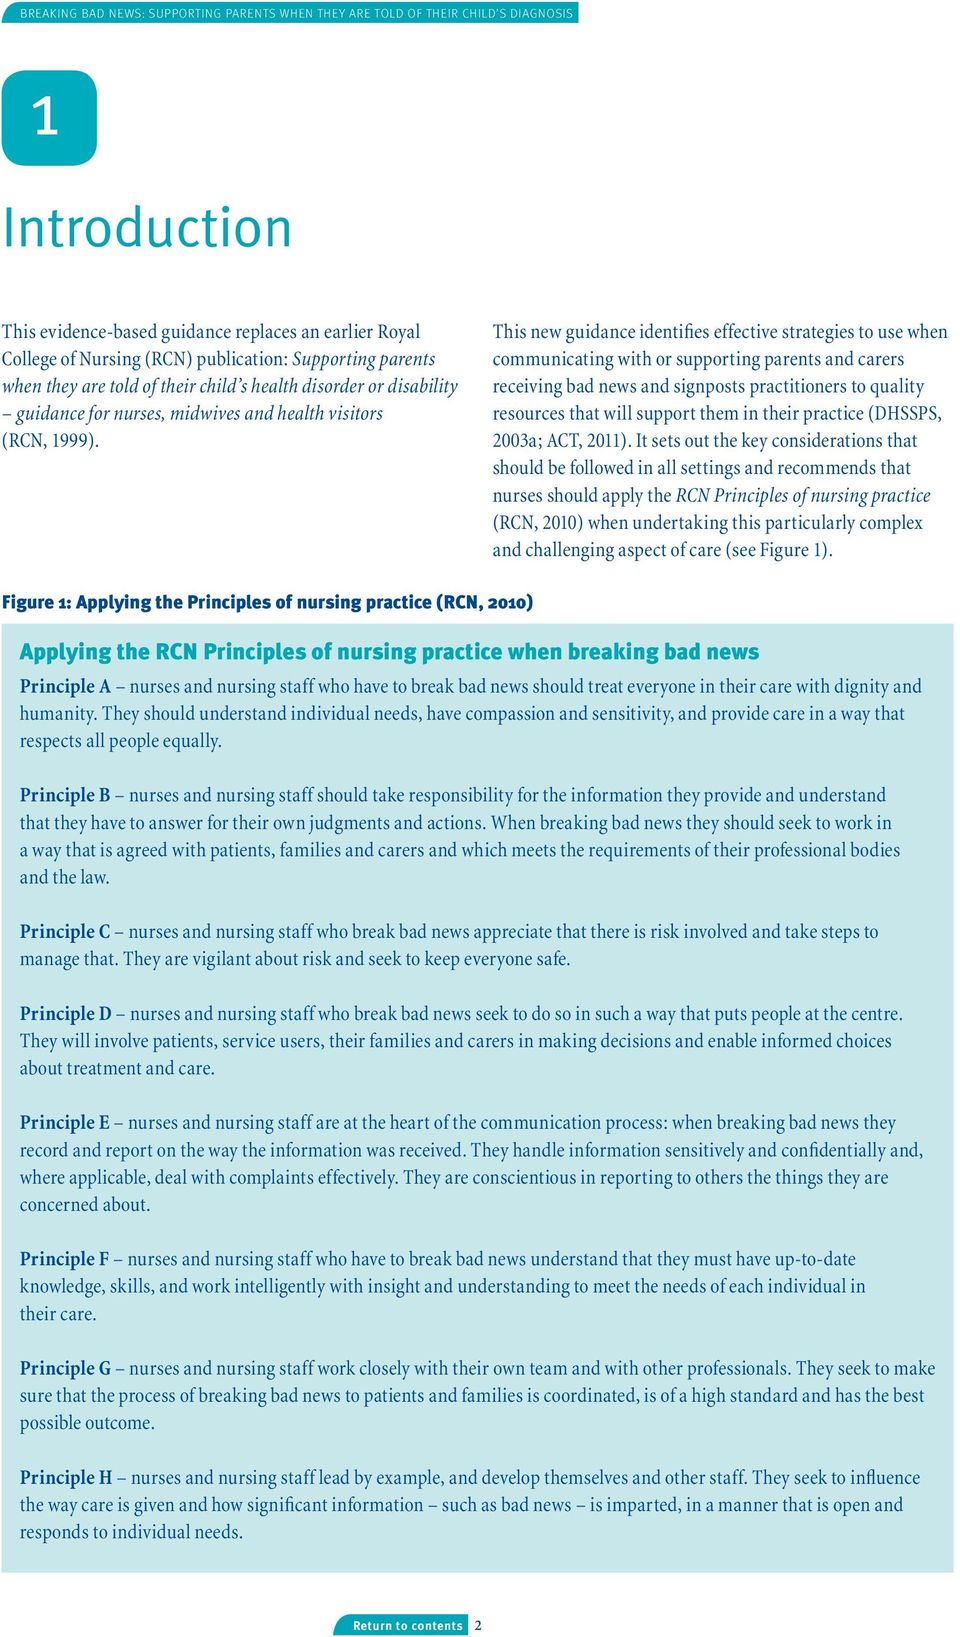 This new guidance identifies effective strategies to use when communicating with or supporting parents and carers receiving bad news and signposts practitioners to quality resources that will support